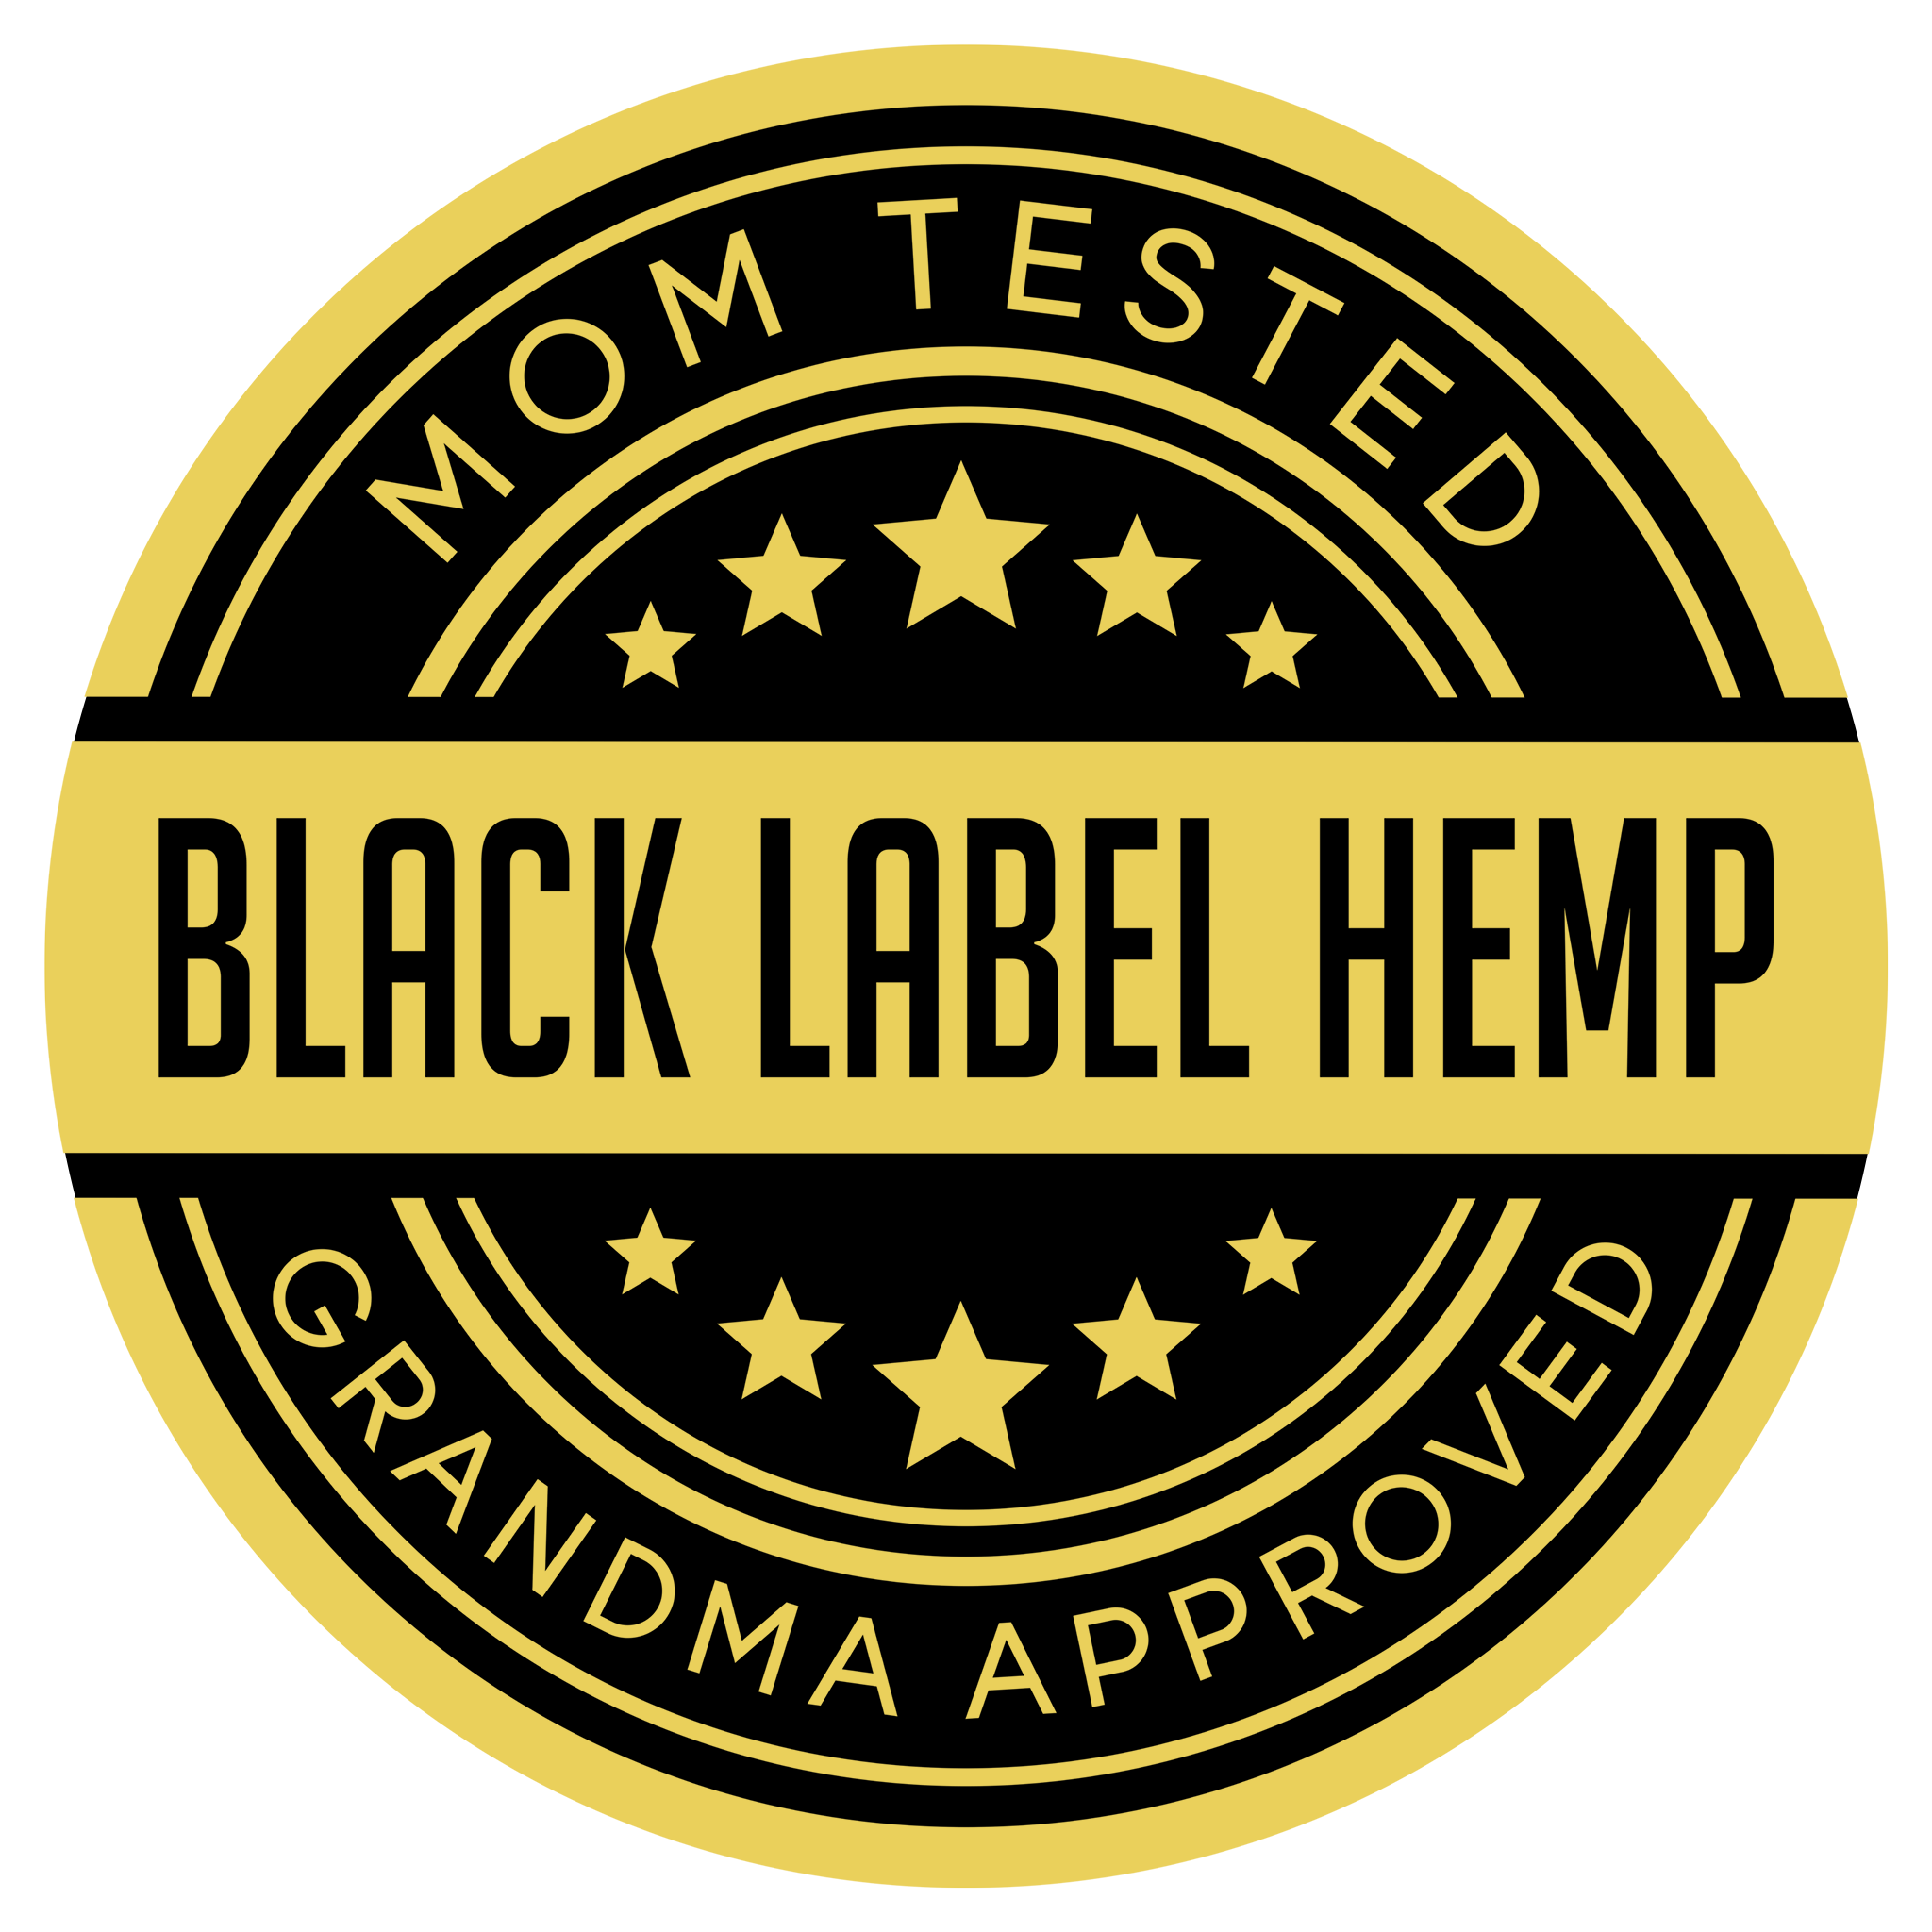 Black Label Hemp